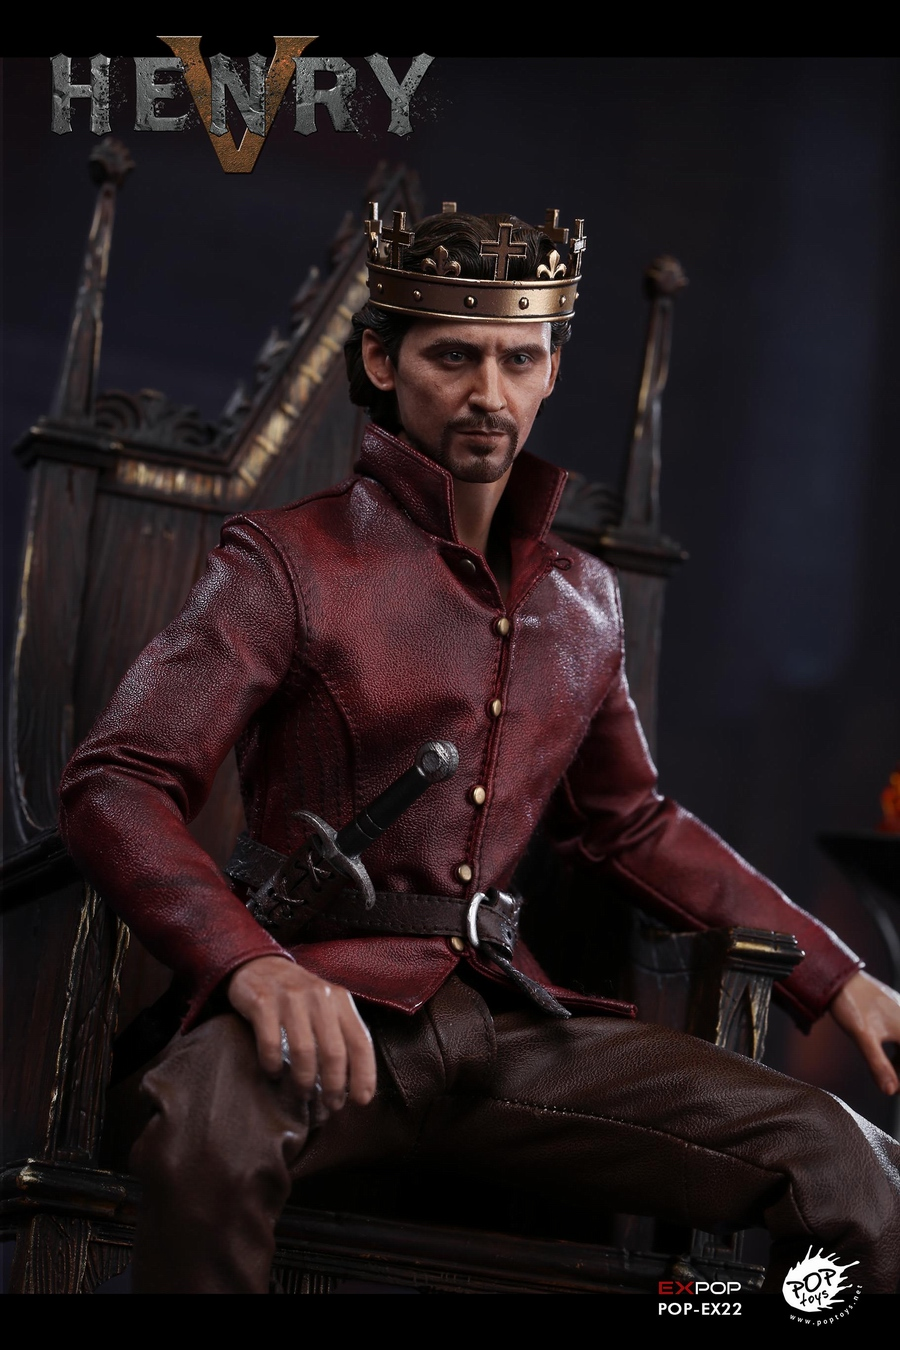 NEW PRODUCT: POPTOYS [WF2019 Shanghai Conference Edition]: 1/6 King of England - Henry V [The Throne Edition] POP-EX22 17592010